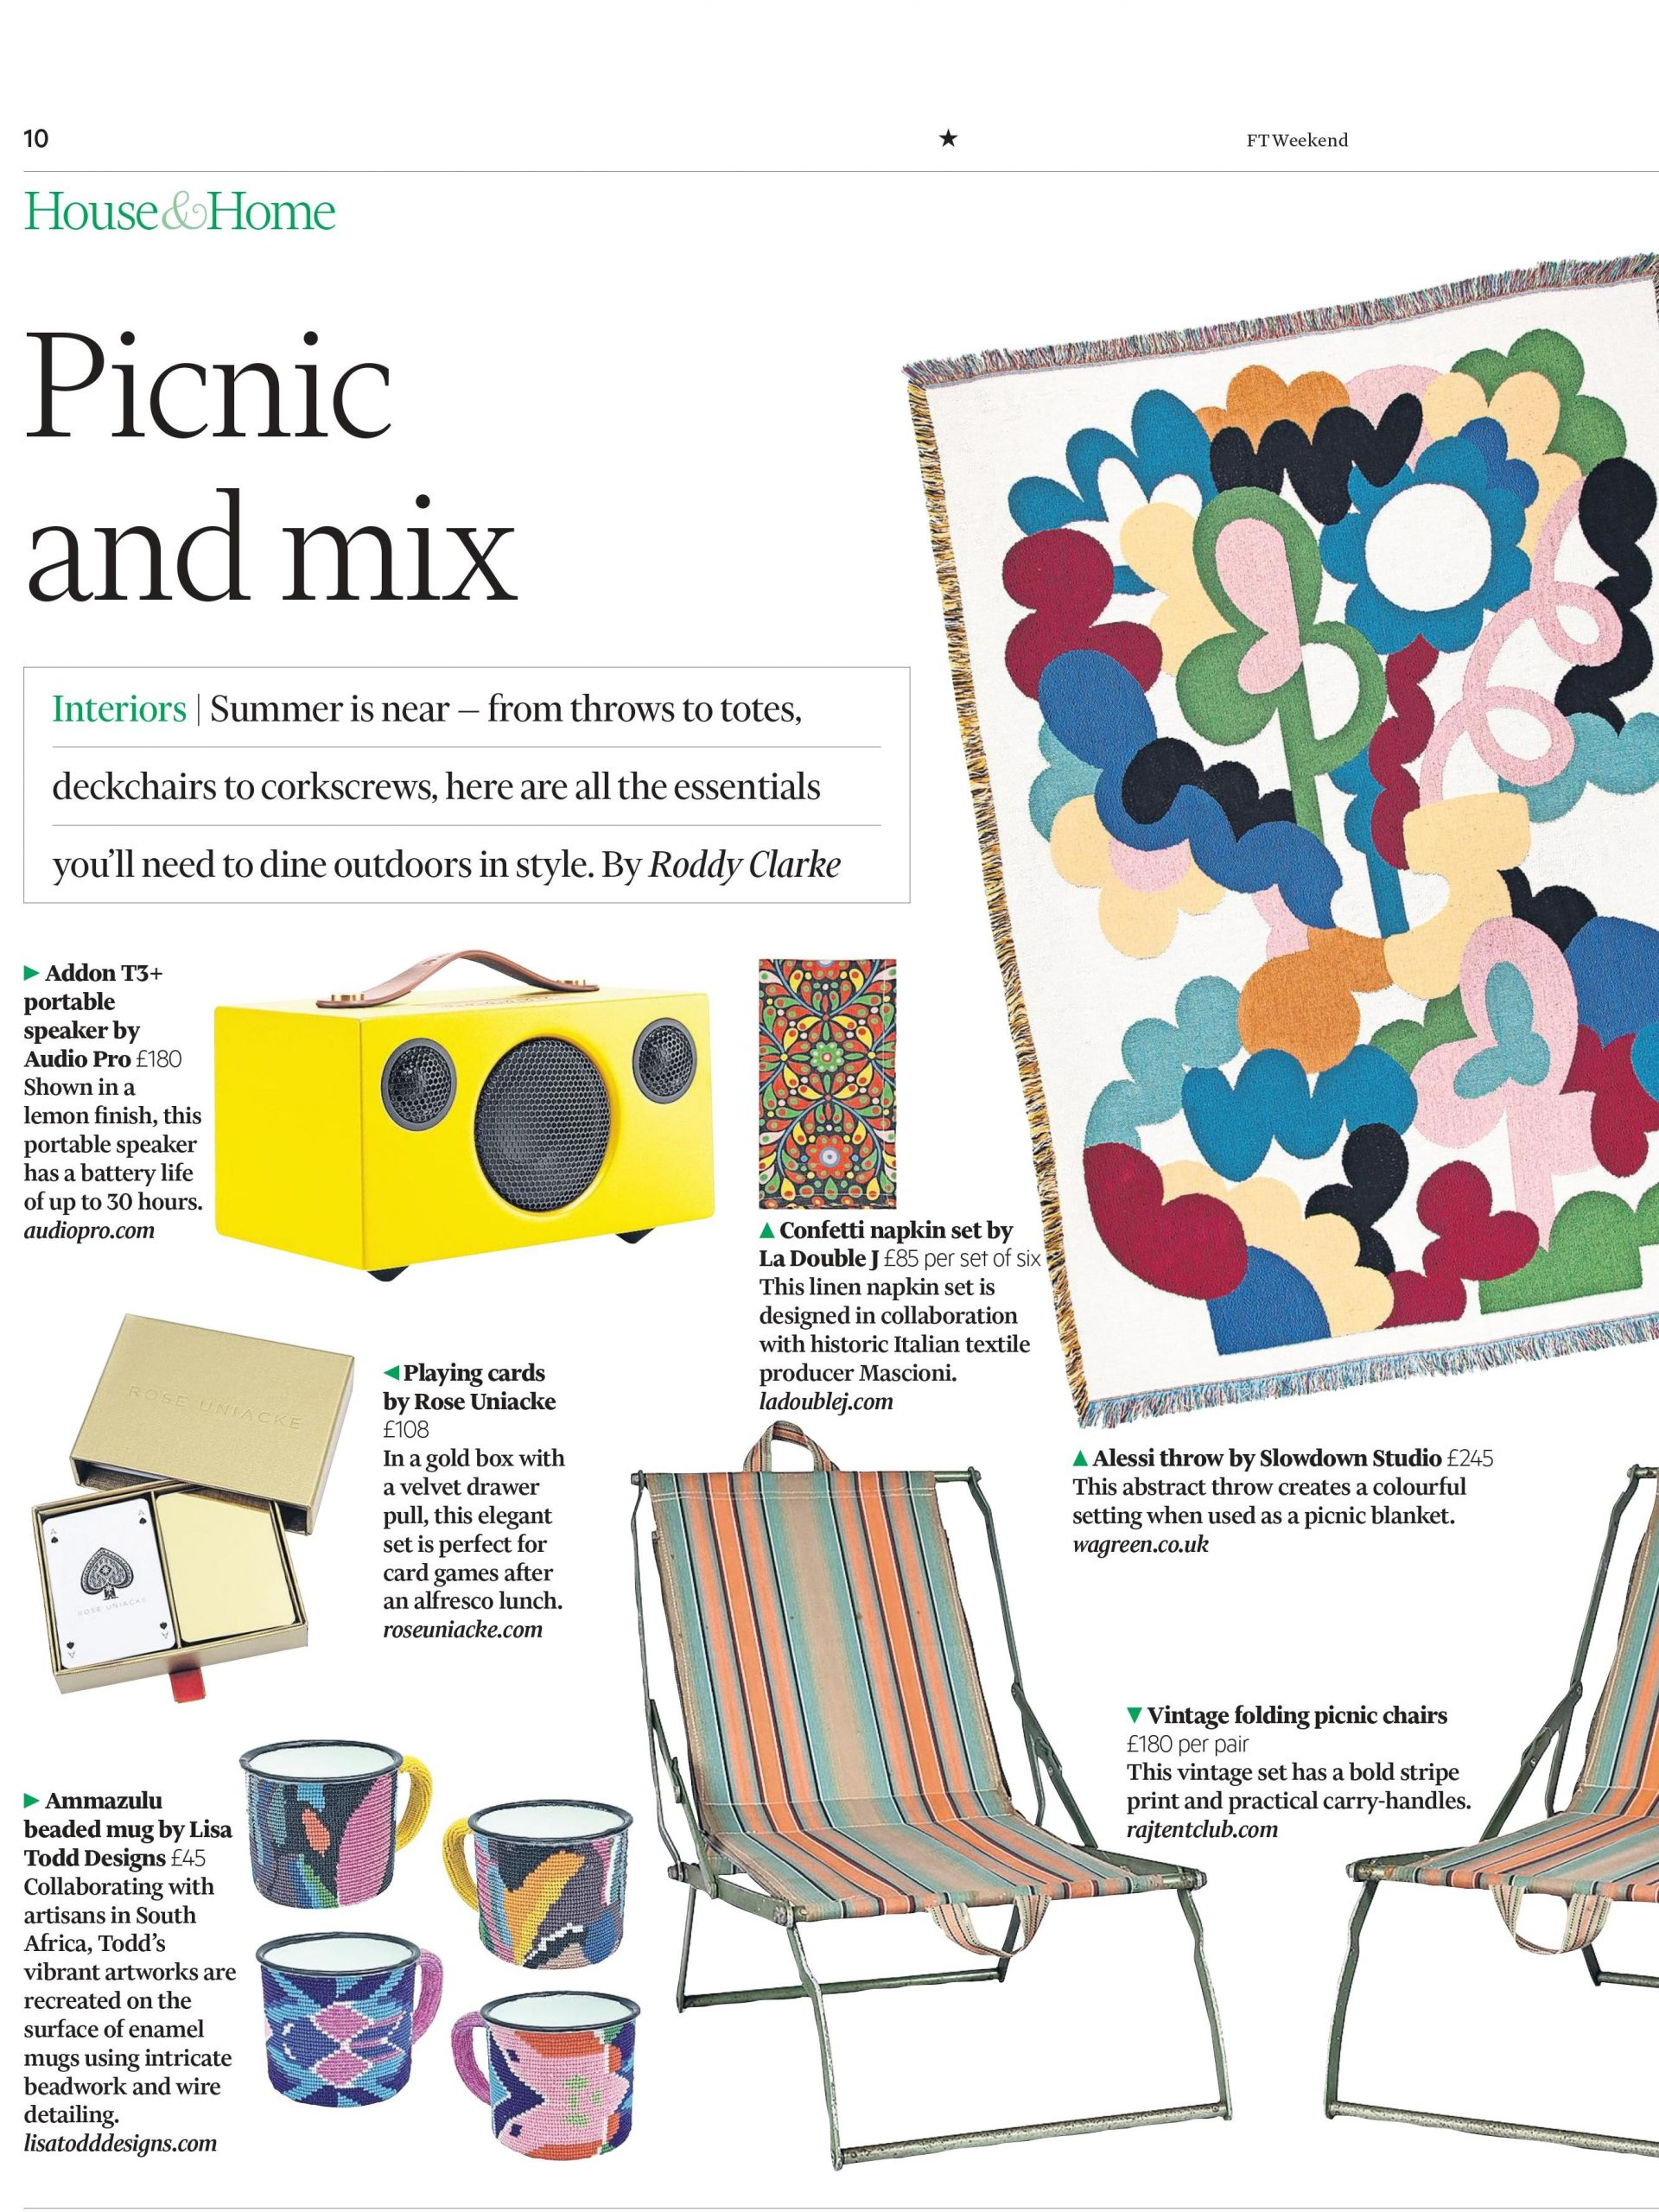 FT Weekend are dining out on Raj Tent Club's vintage folding picnic chairs